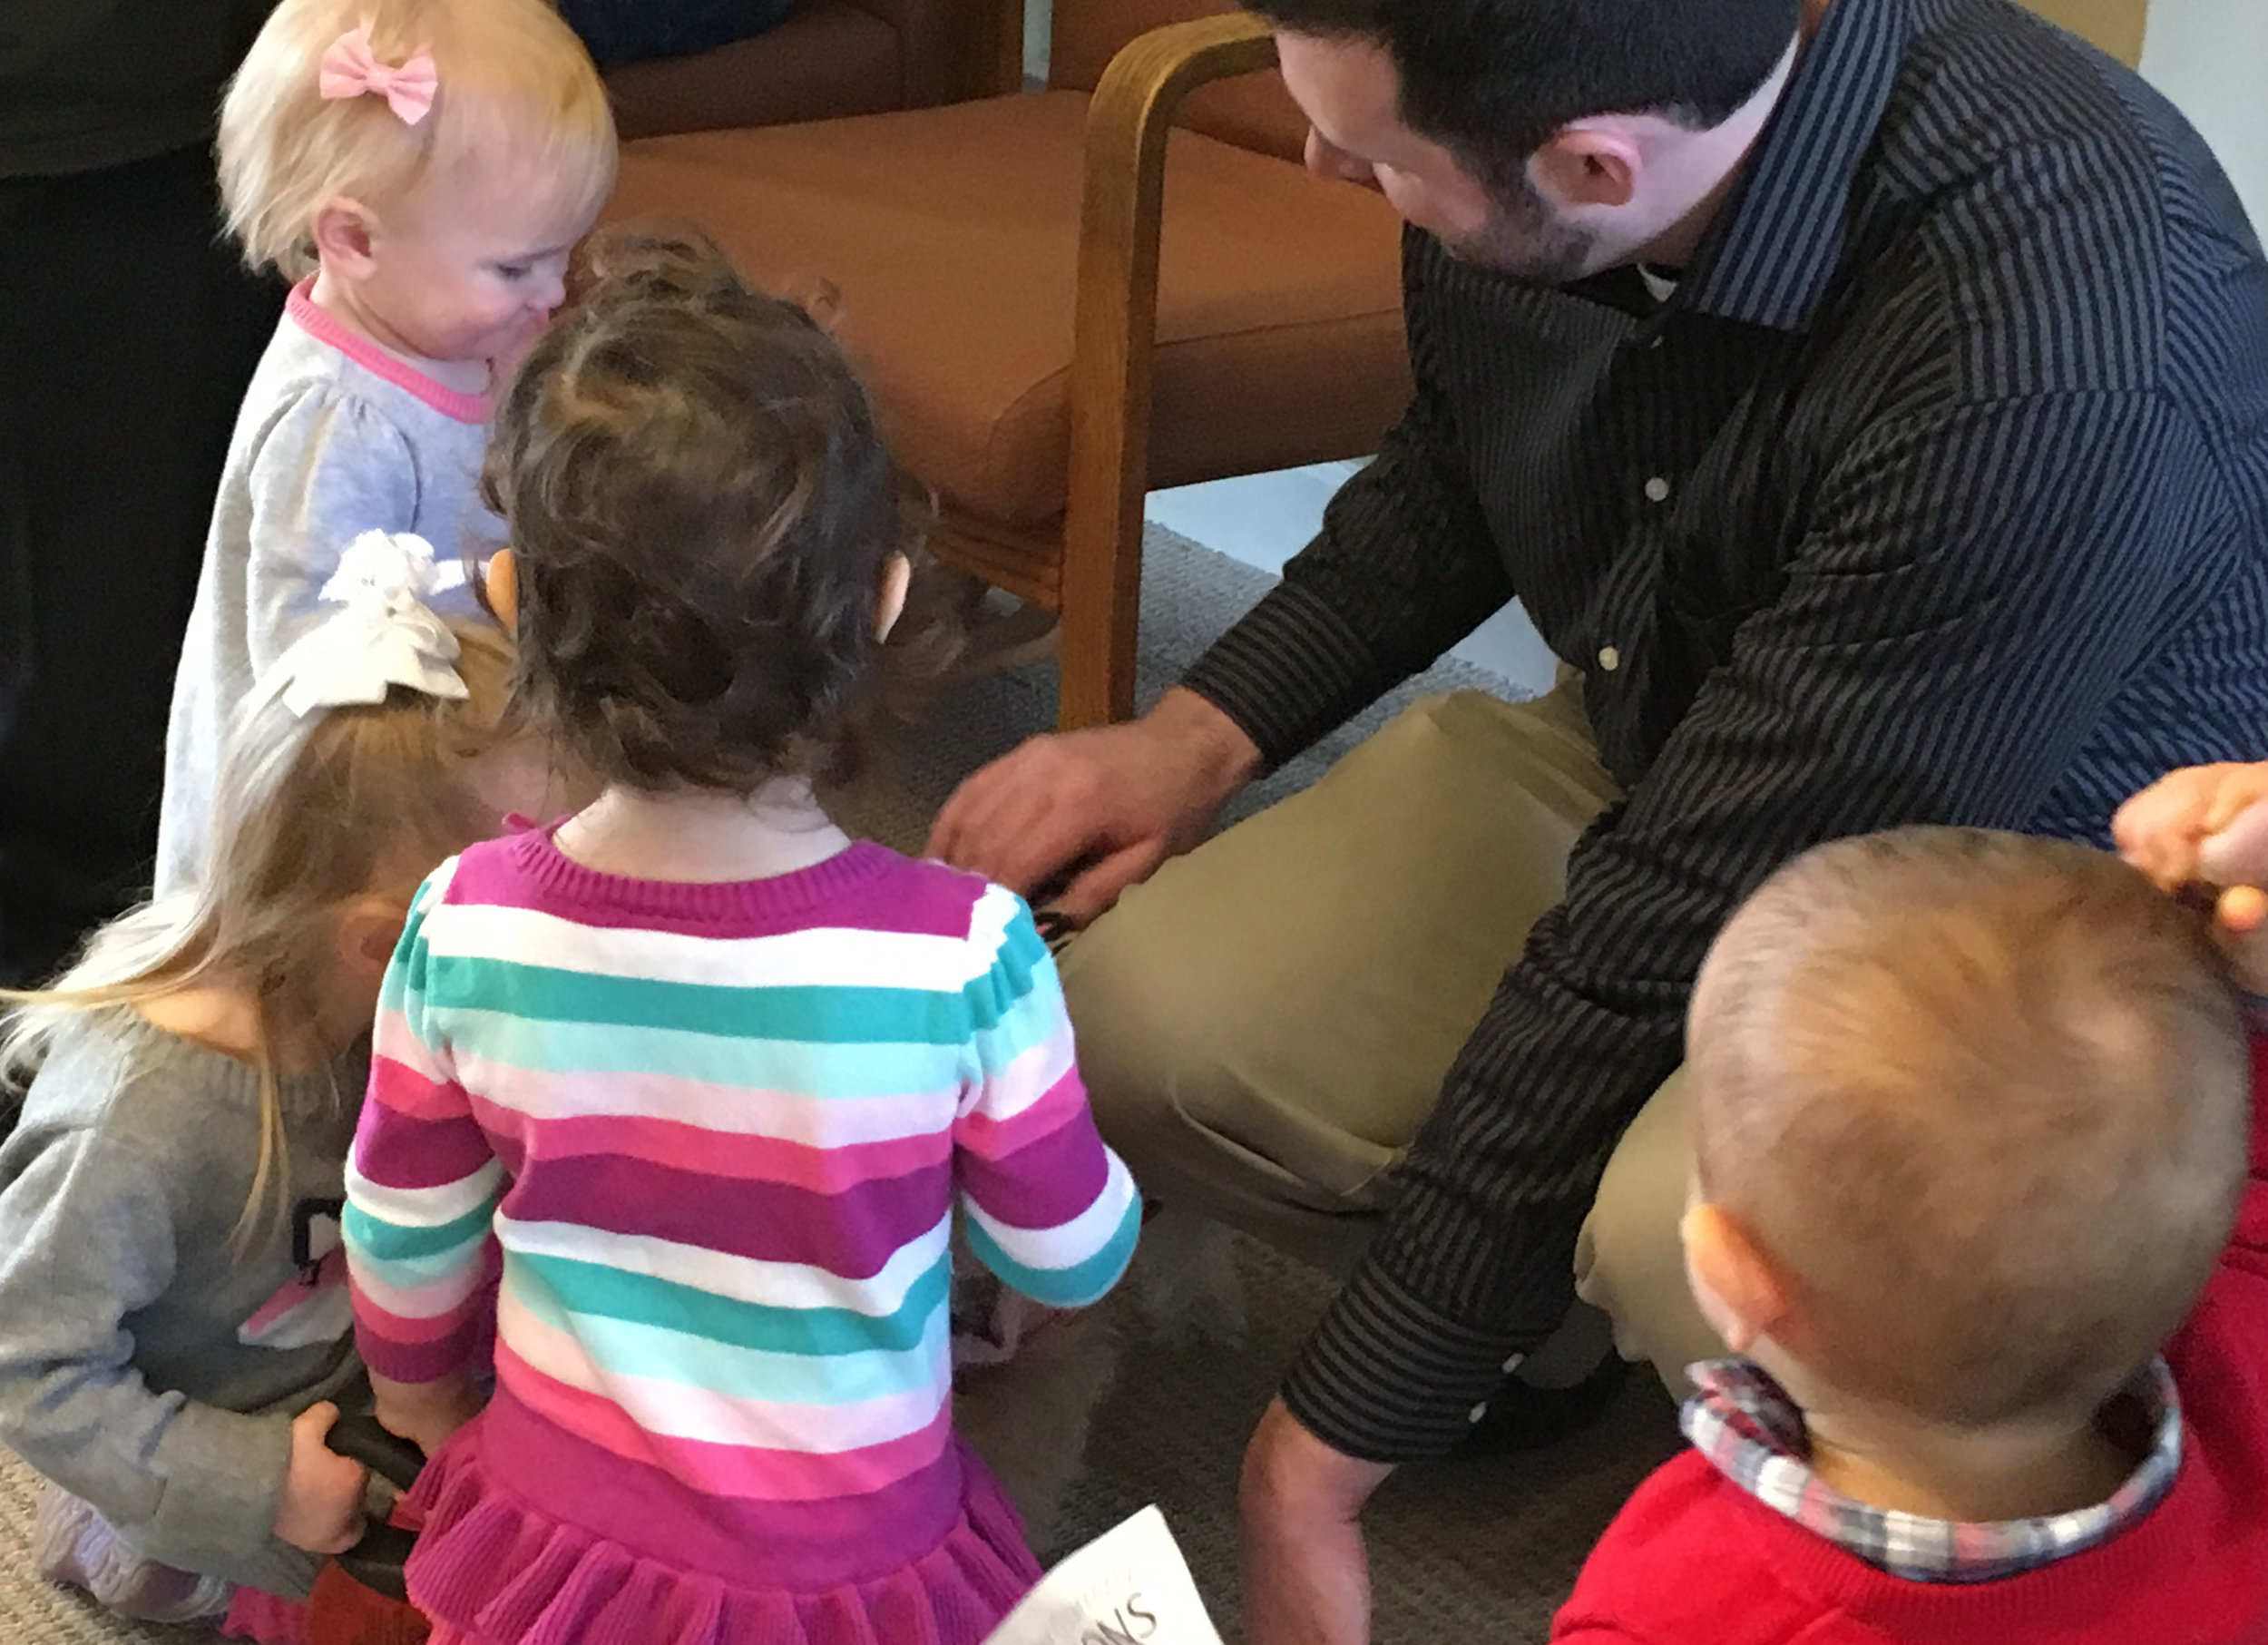 Little children are welcome in Sunday School at First Church of Christ, Scientist in Glen Ellyn, IL